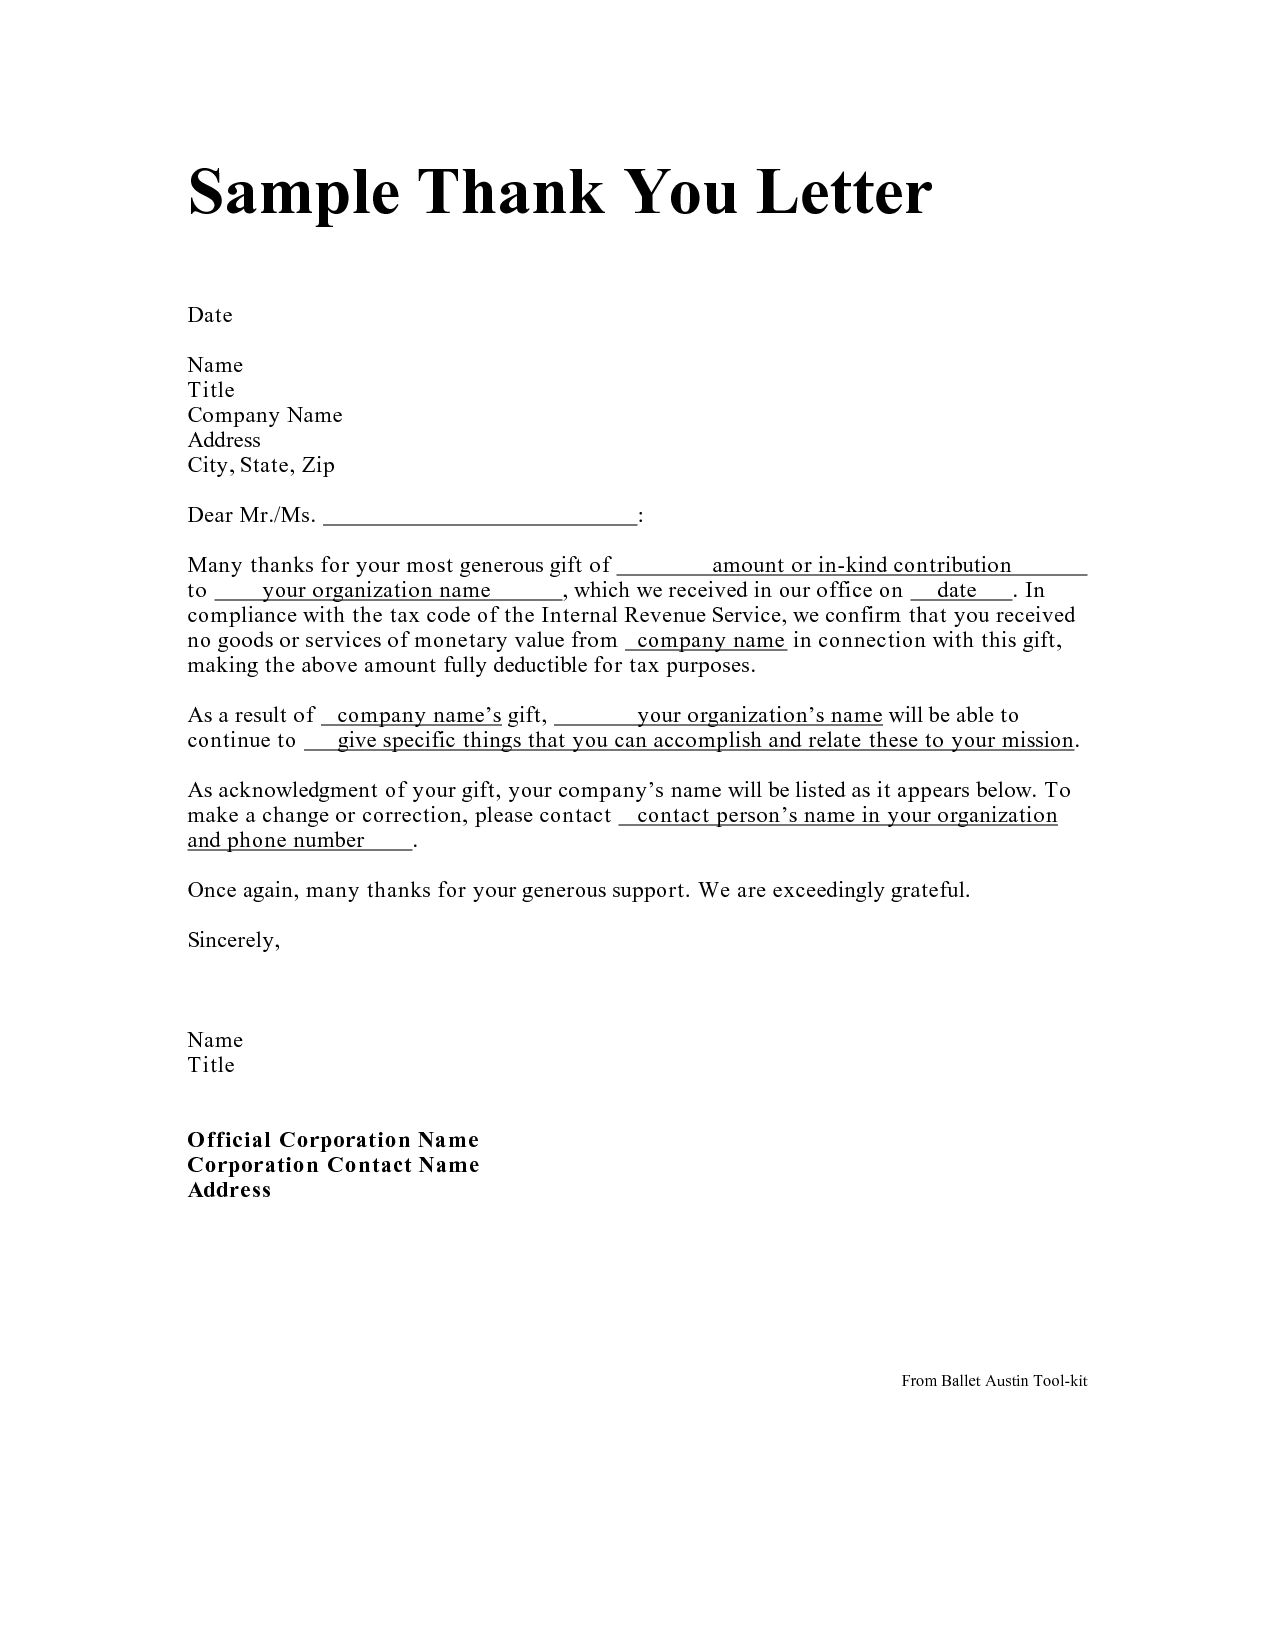 Personal Thank You Letter Personal Thank You Letter Samples – Personal Thank You Letter